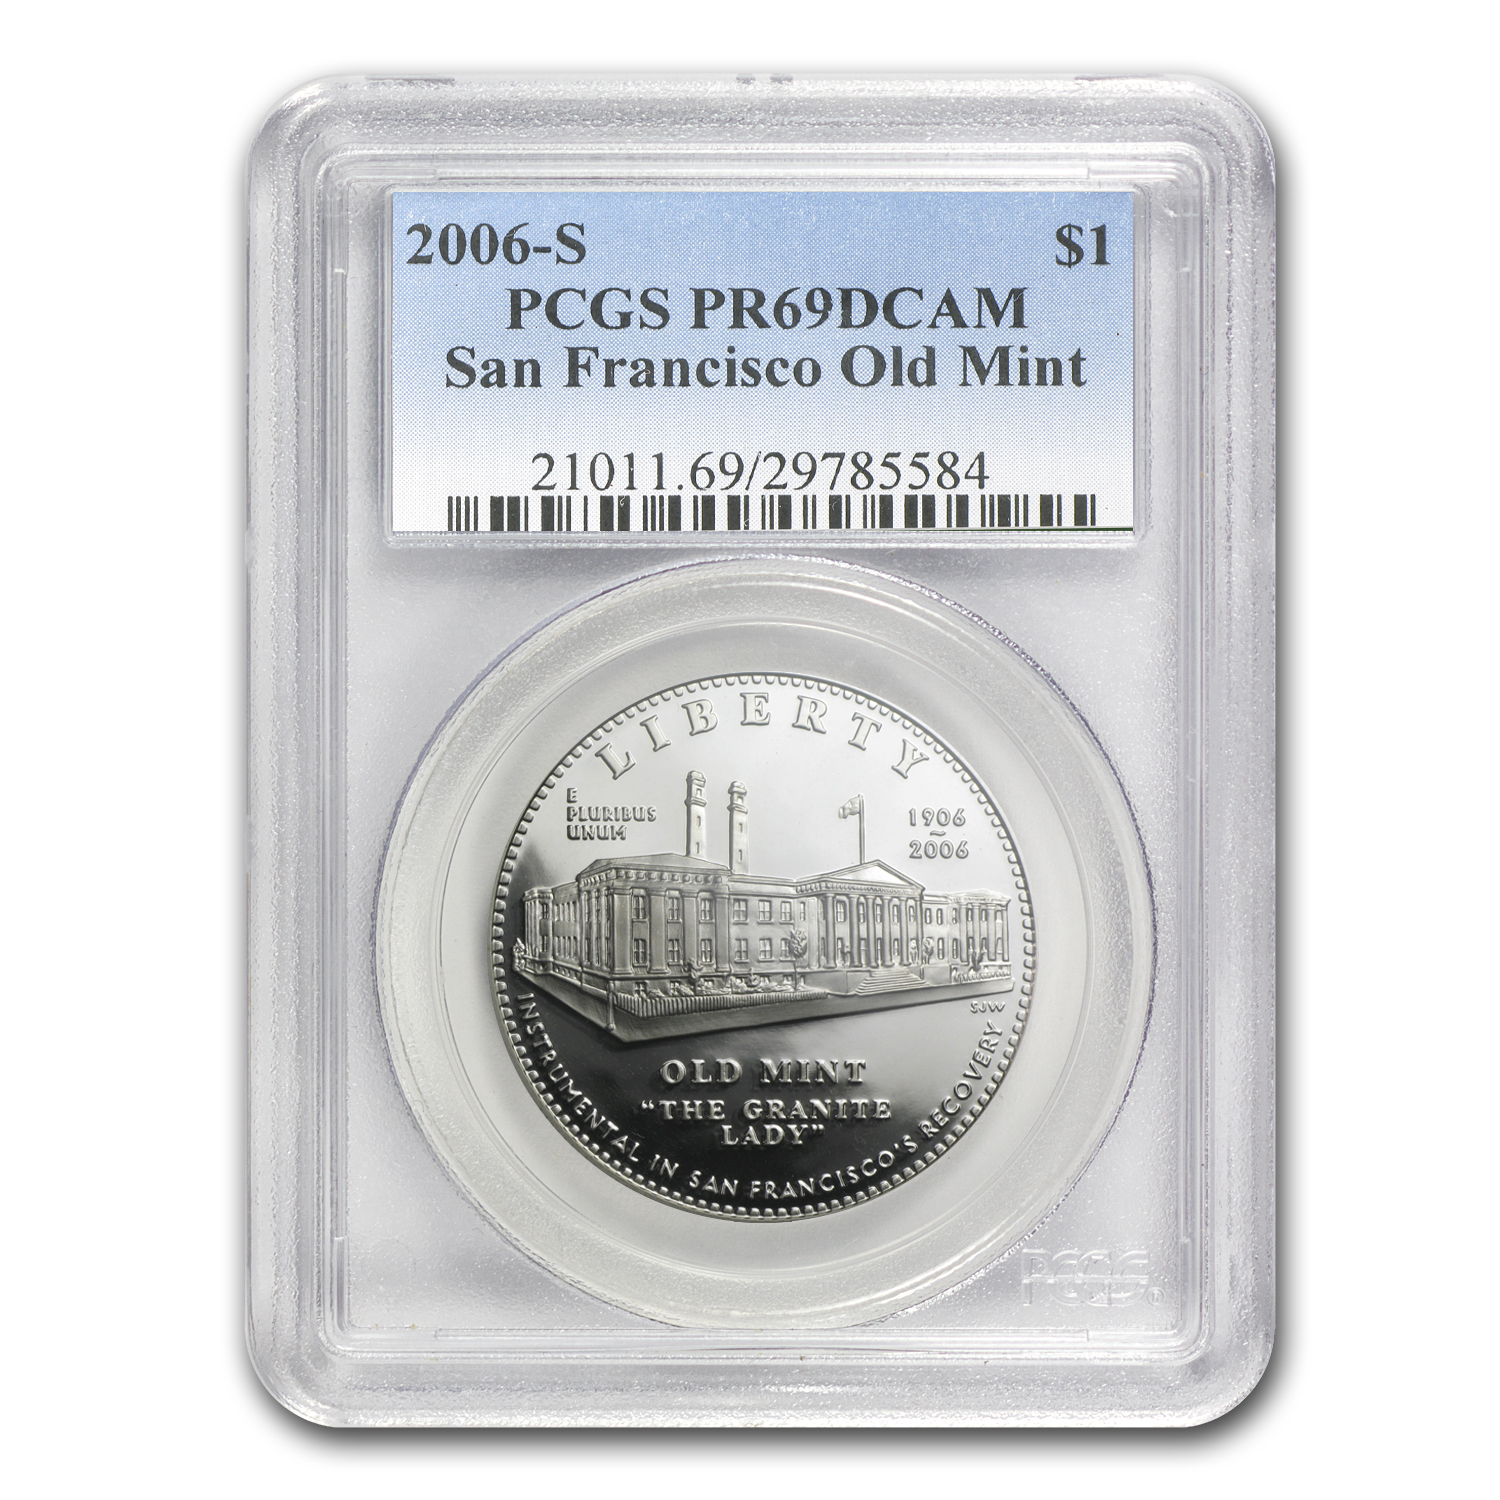 2006-S San Francisco Old Mint $1 Silver Commem PR-69 DCAM PCGS